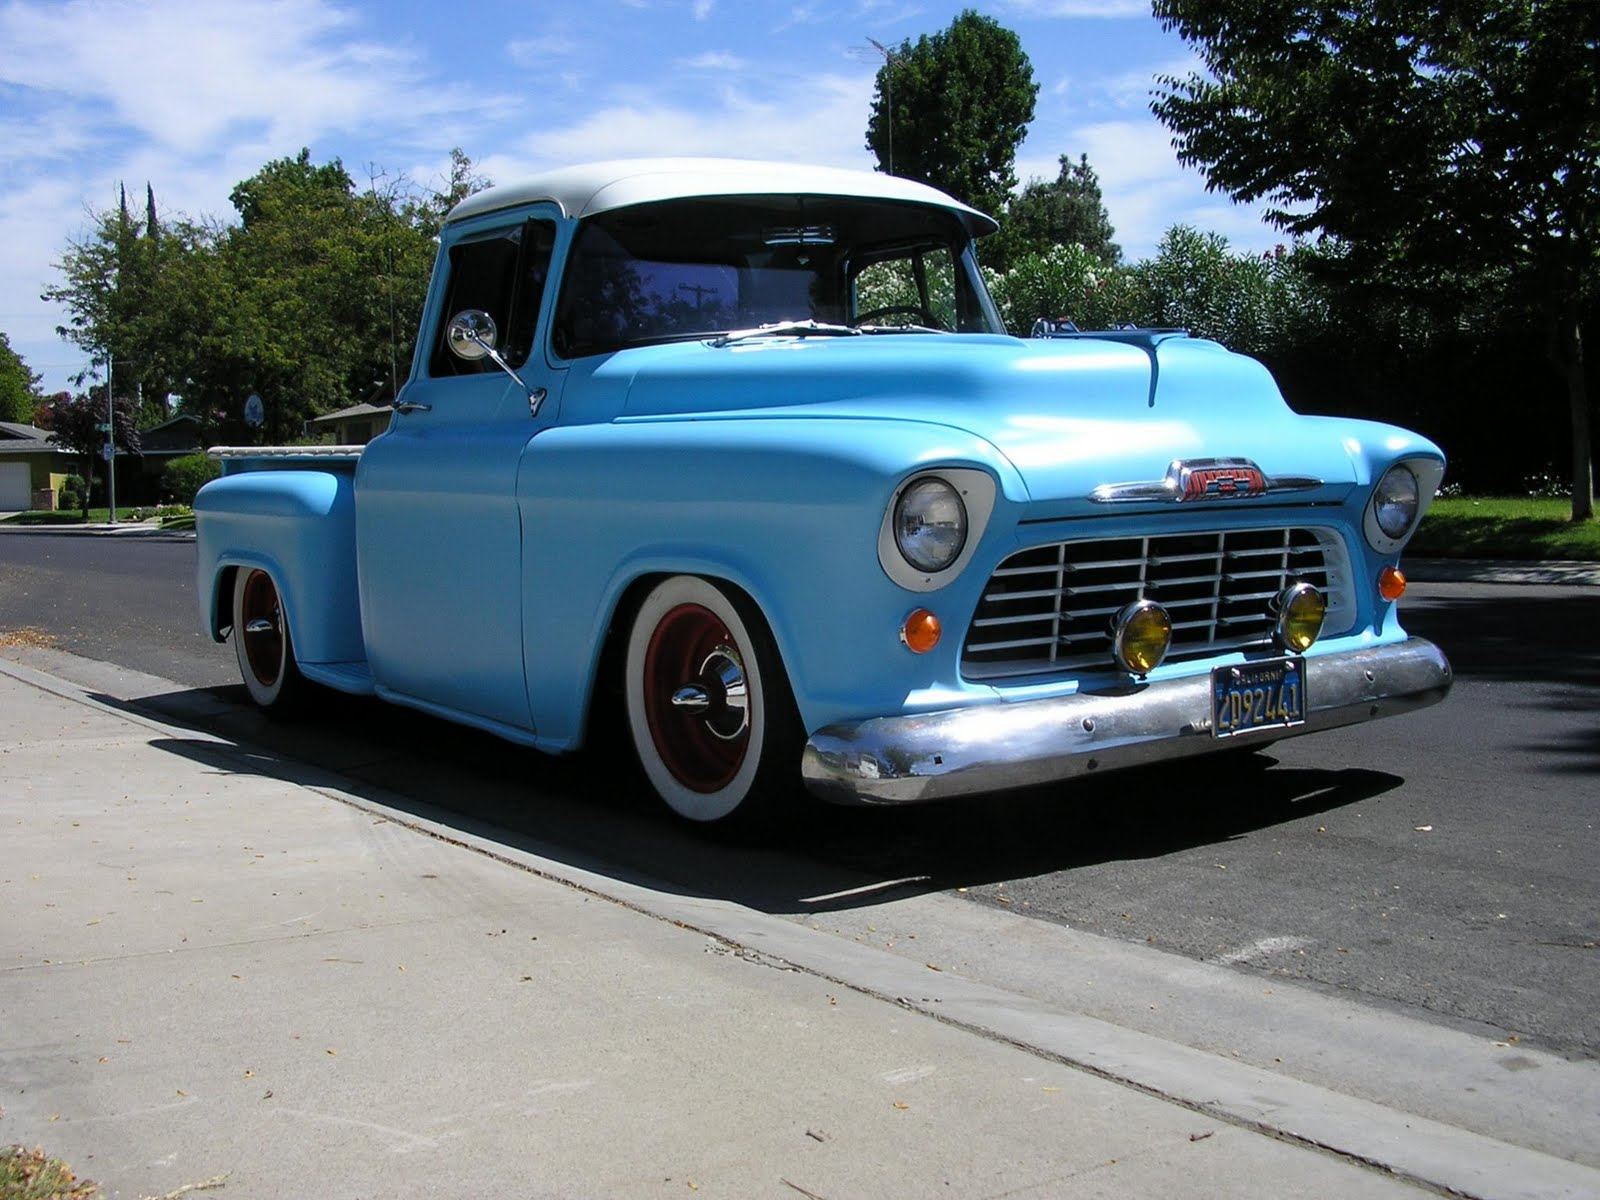 1955 chevrolet cameo pickup hotrod pictures hot rod cars. Black Bedroom Furniture Sets. Home Design Ideas